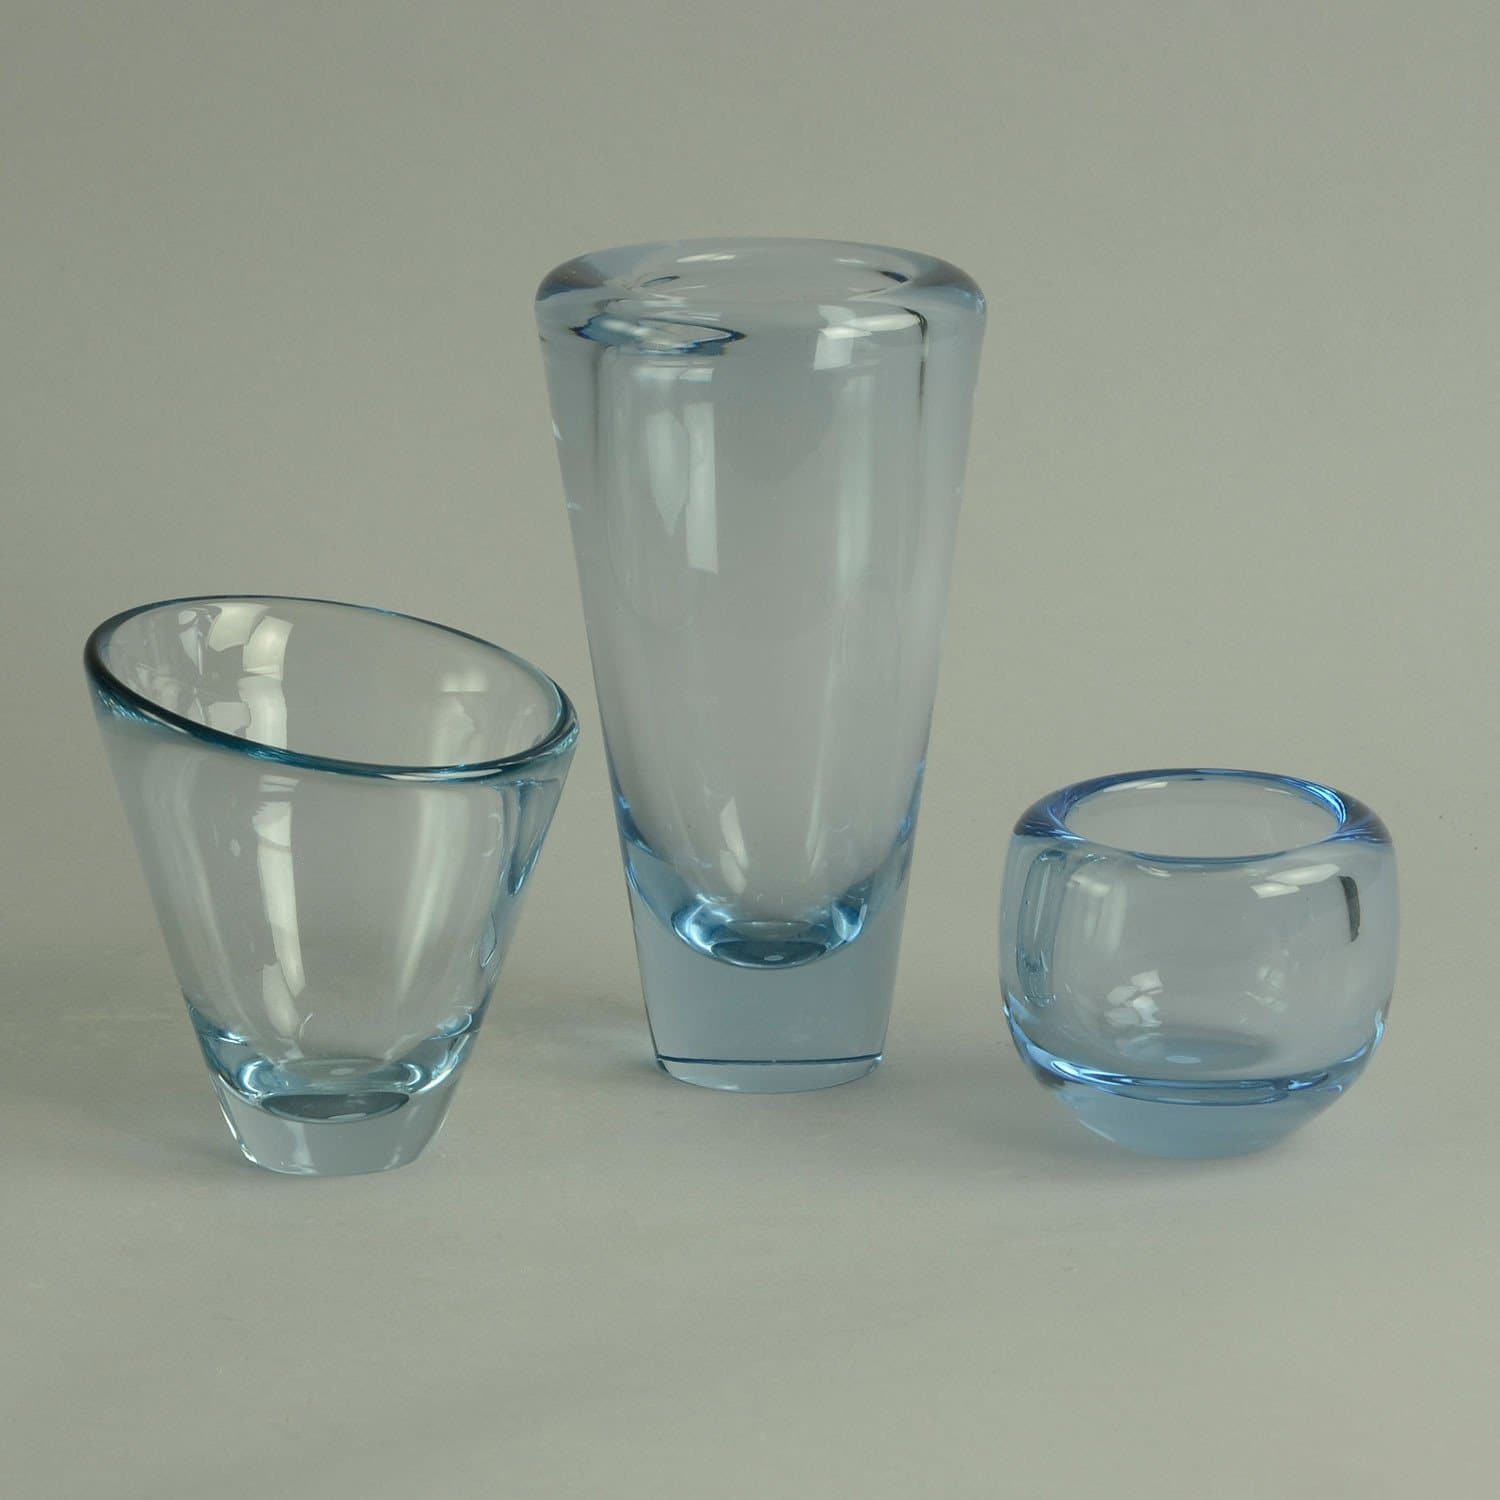 Set of three glass vases by holmegaard freeforms set of three glass vases by holmegaard floridaeventfo Image collections